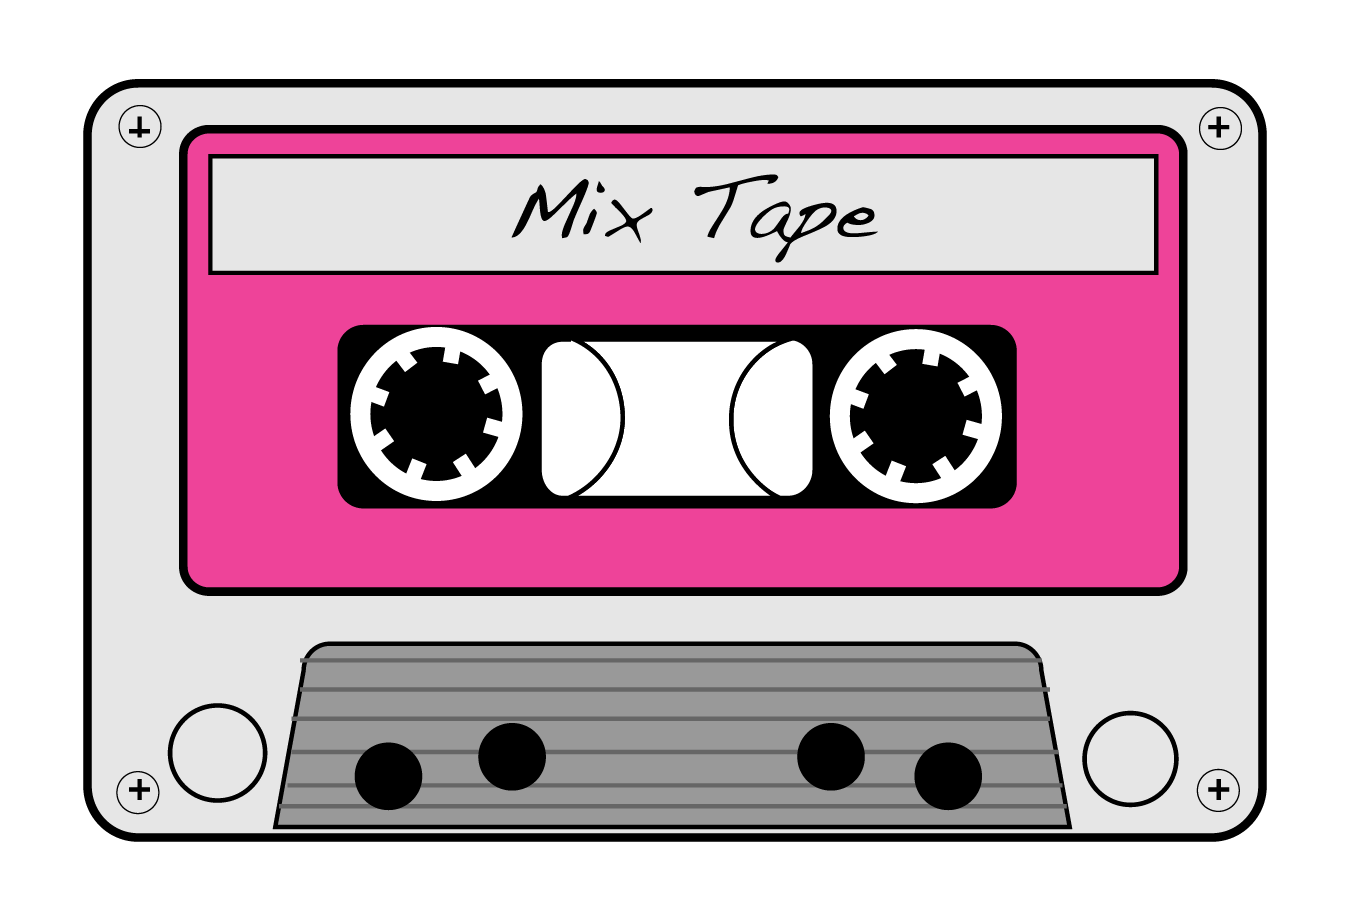 mixtape drawing colorful